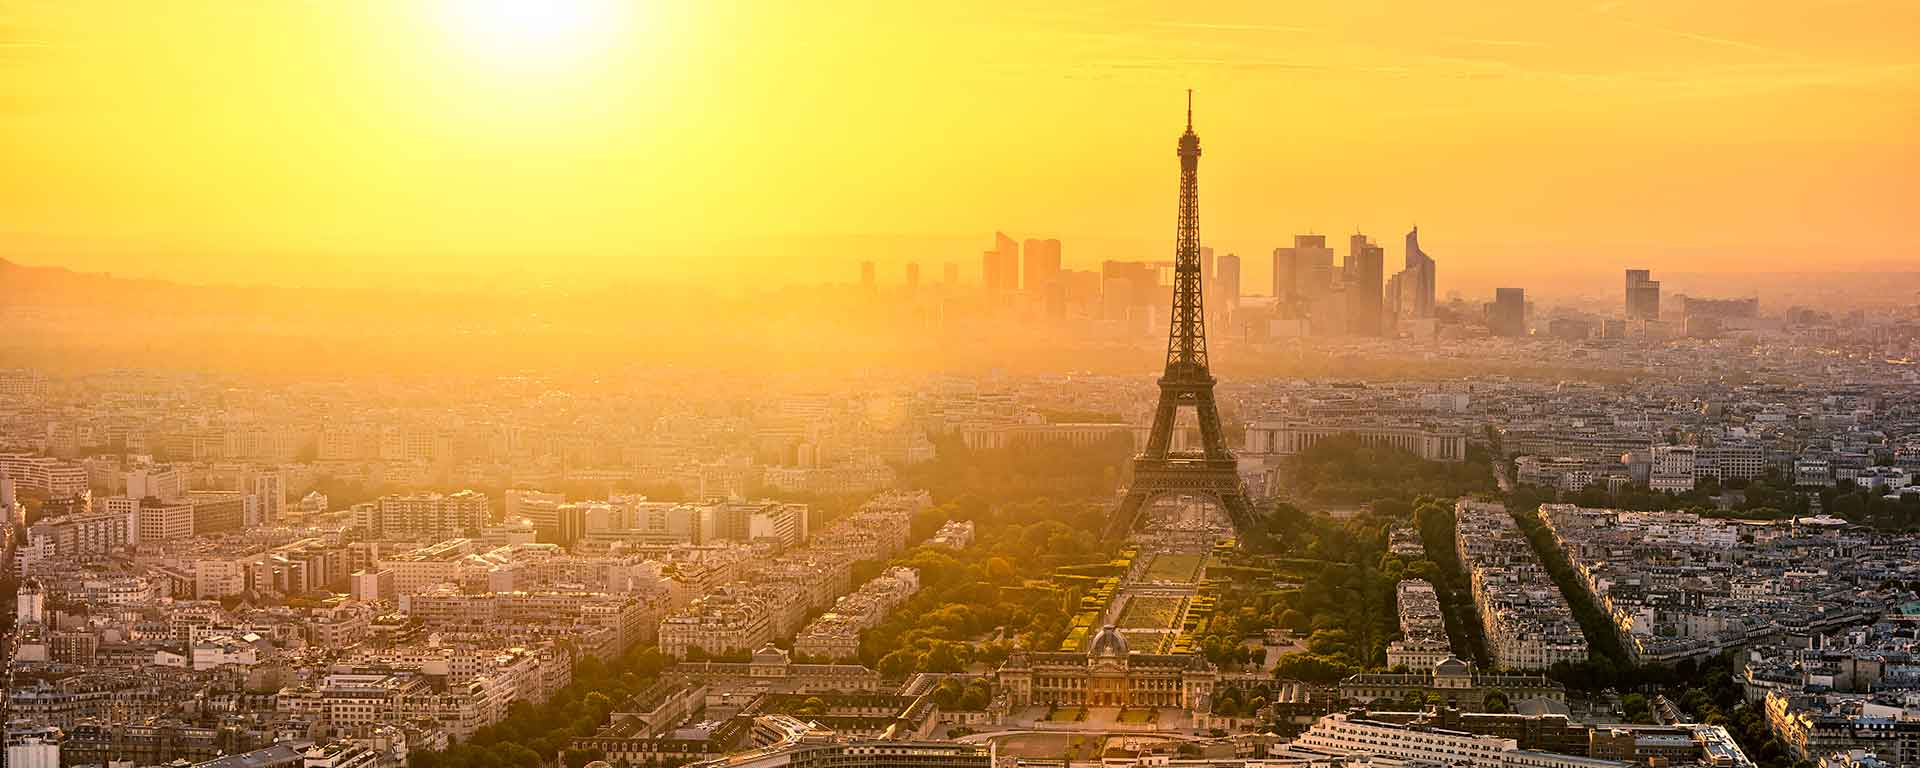 Paris vista do alto, foto shutterstock